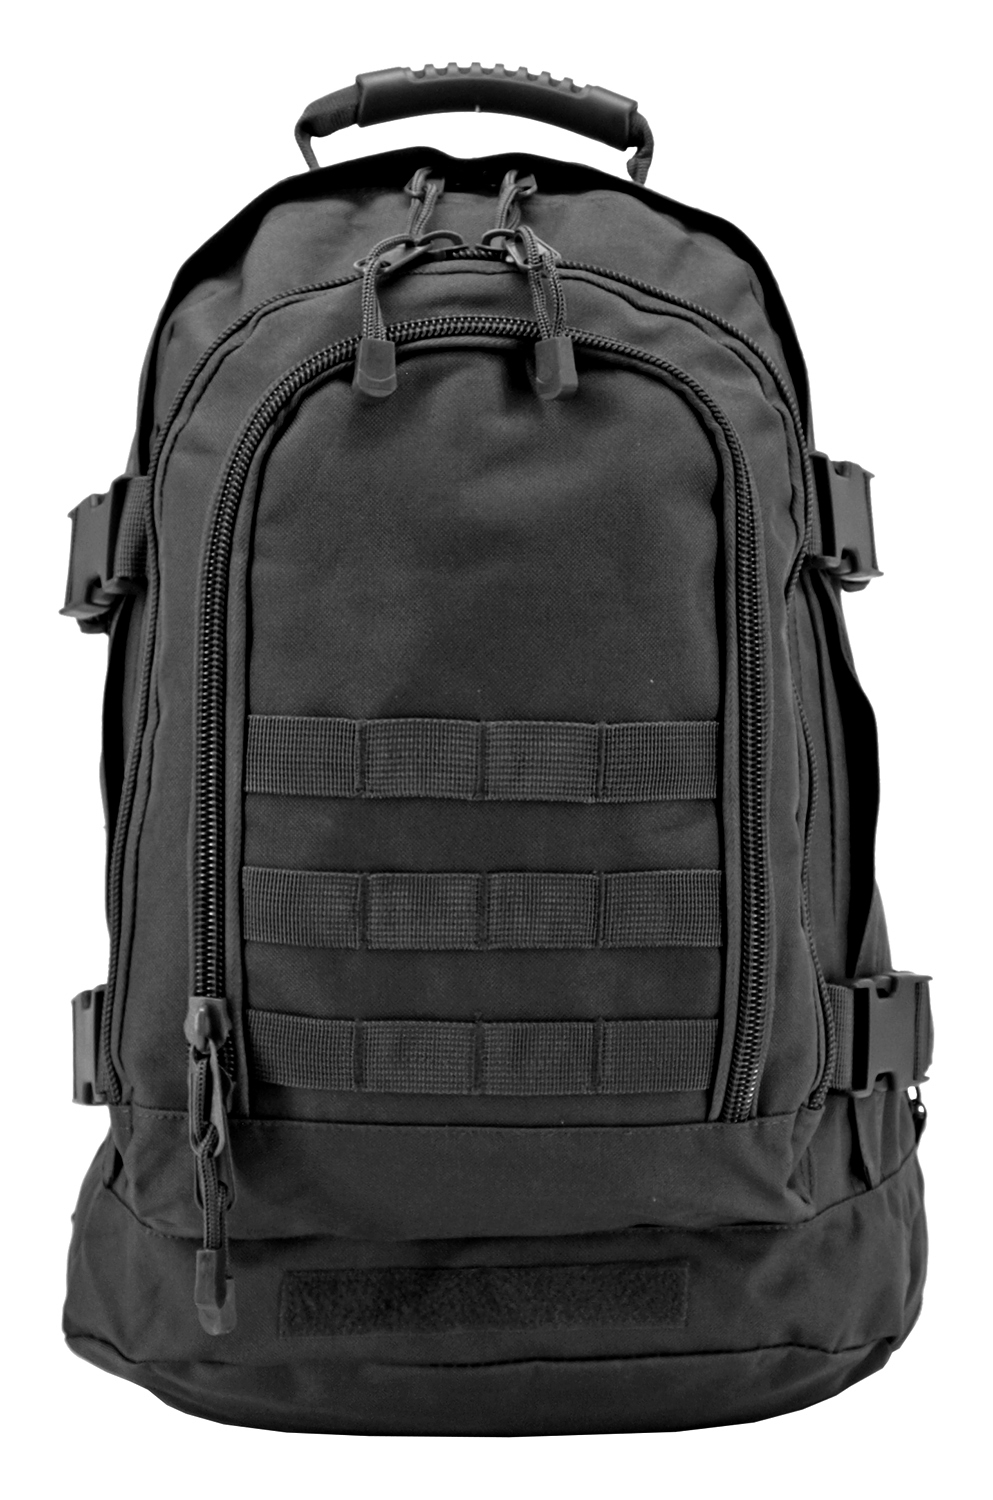 Expandable Tactical Backpack - Black